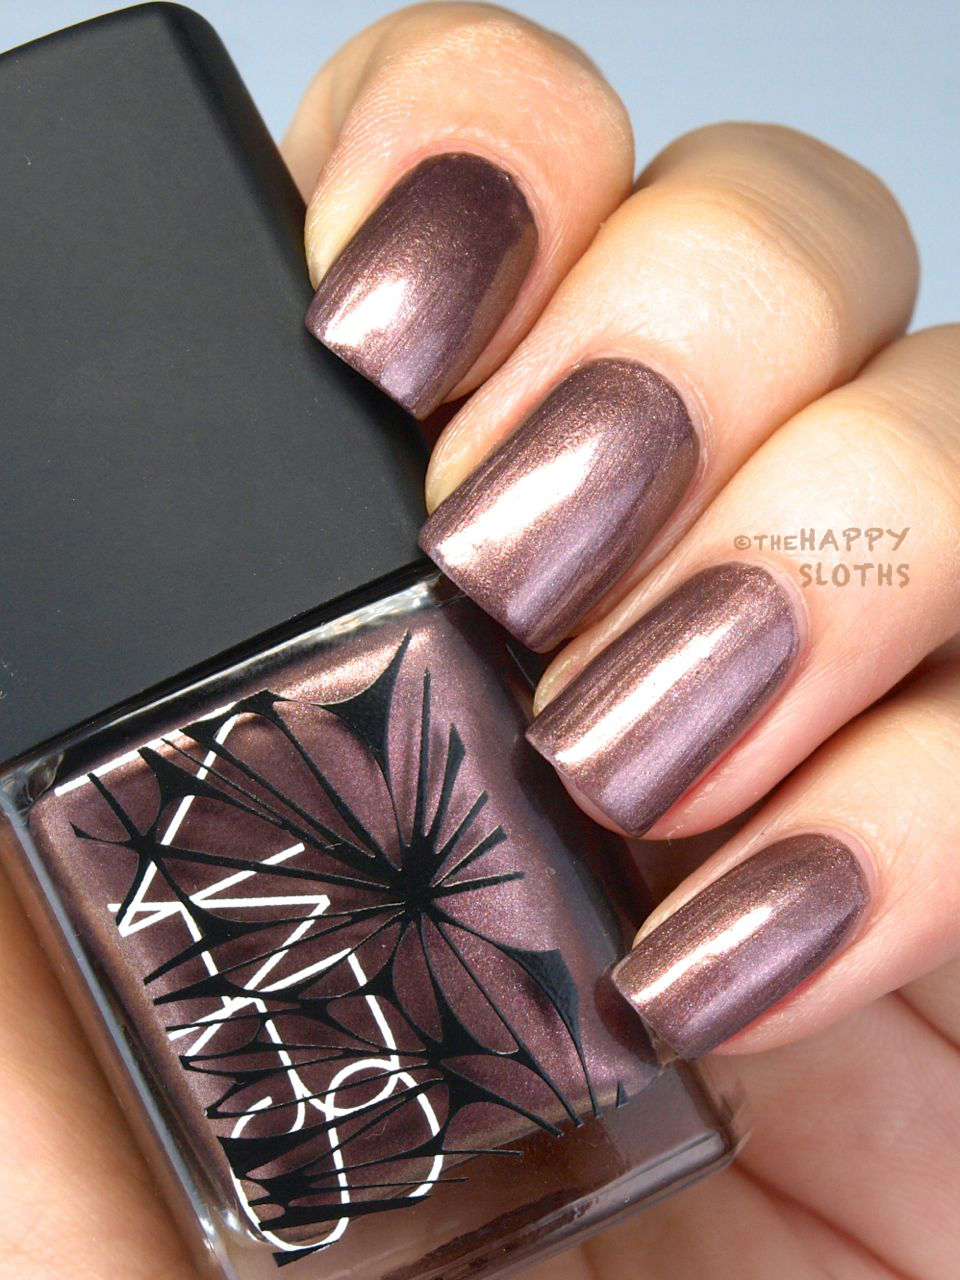 Nars Holiday 2014 Collection Nail Polish: Review and Swatches